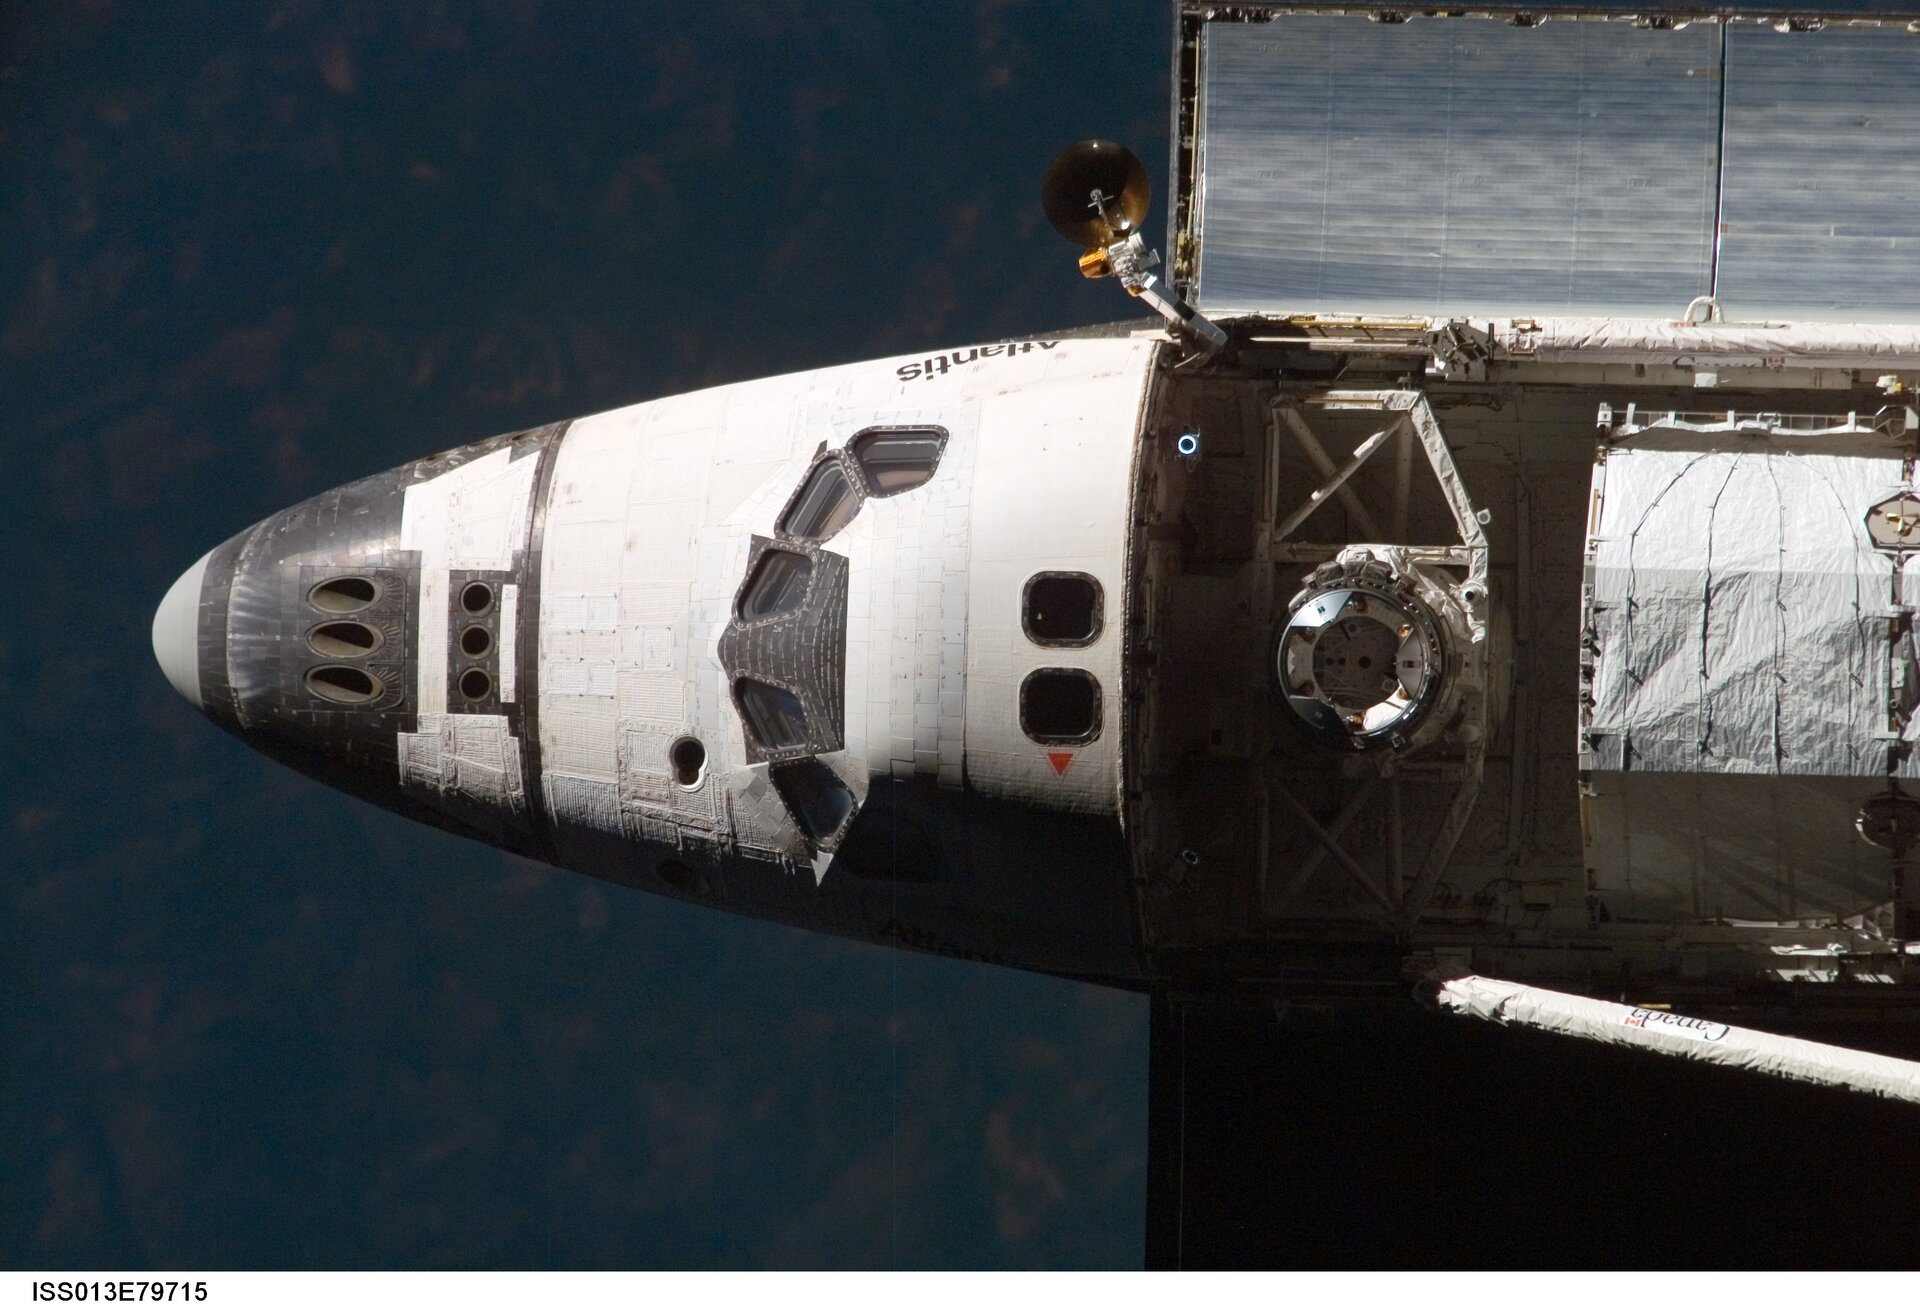 Image of the Space Shuttle approaching the orbital outpost